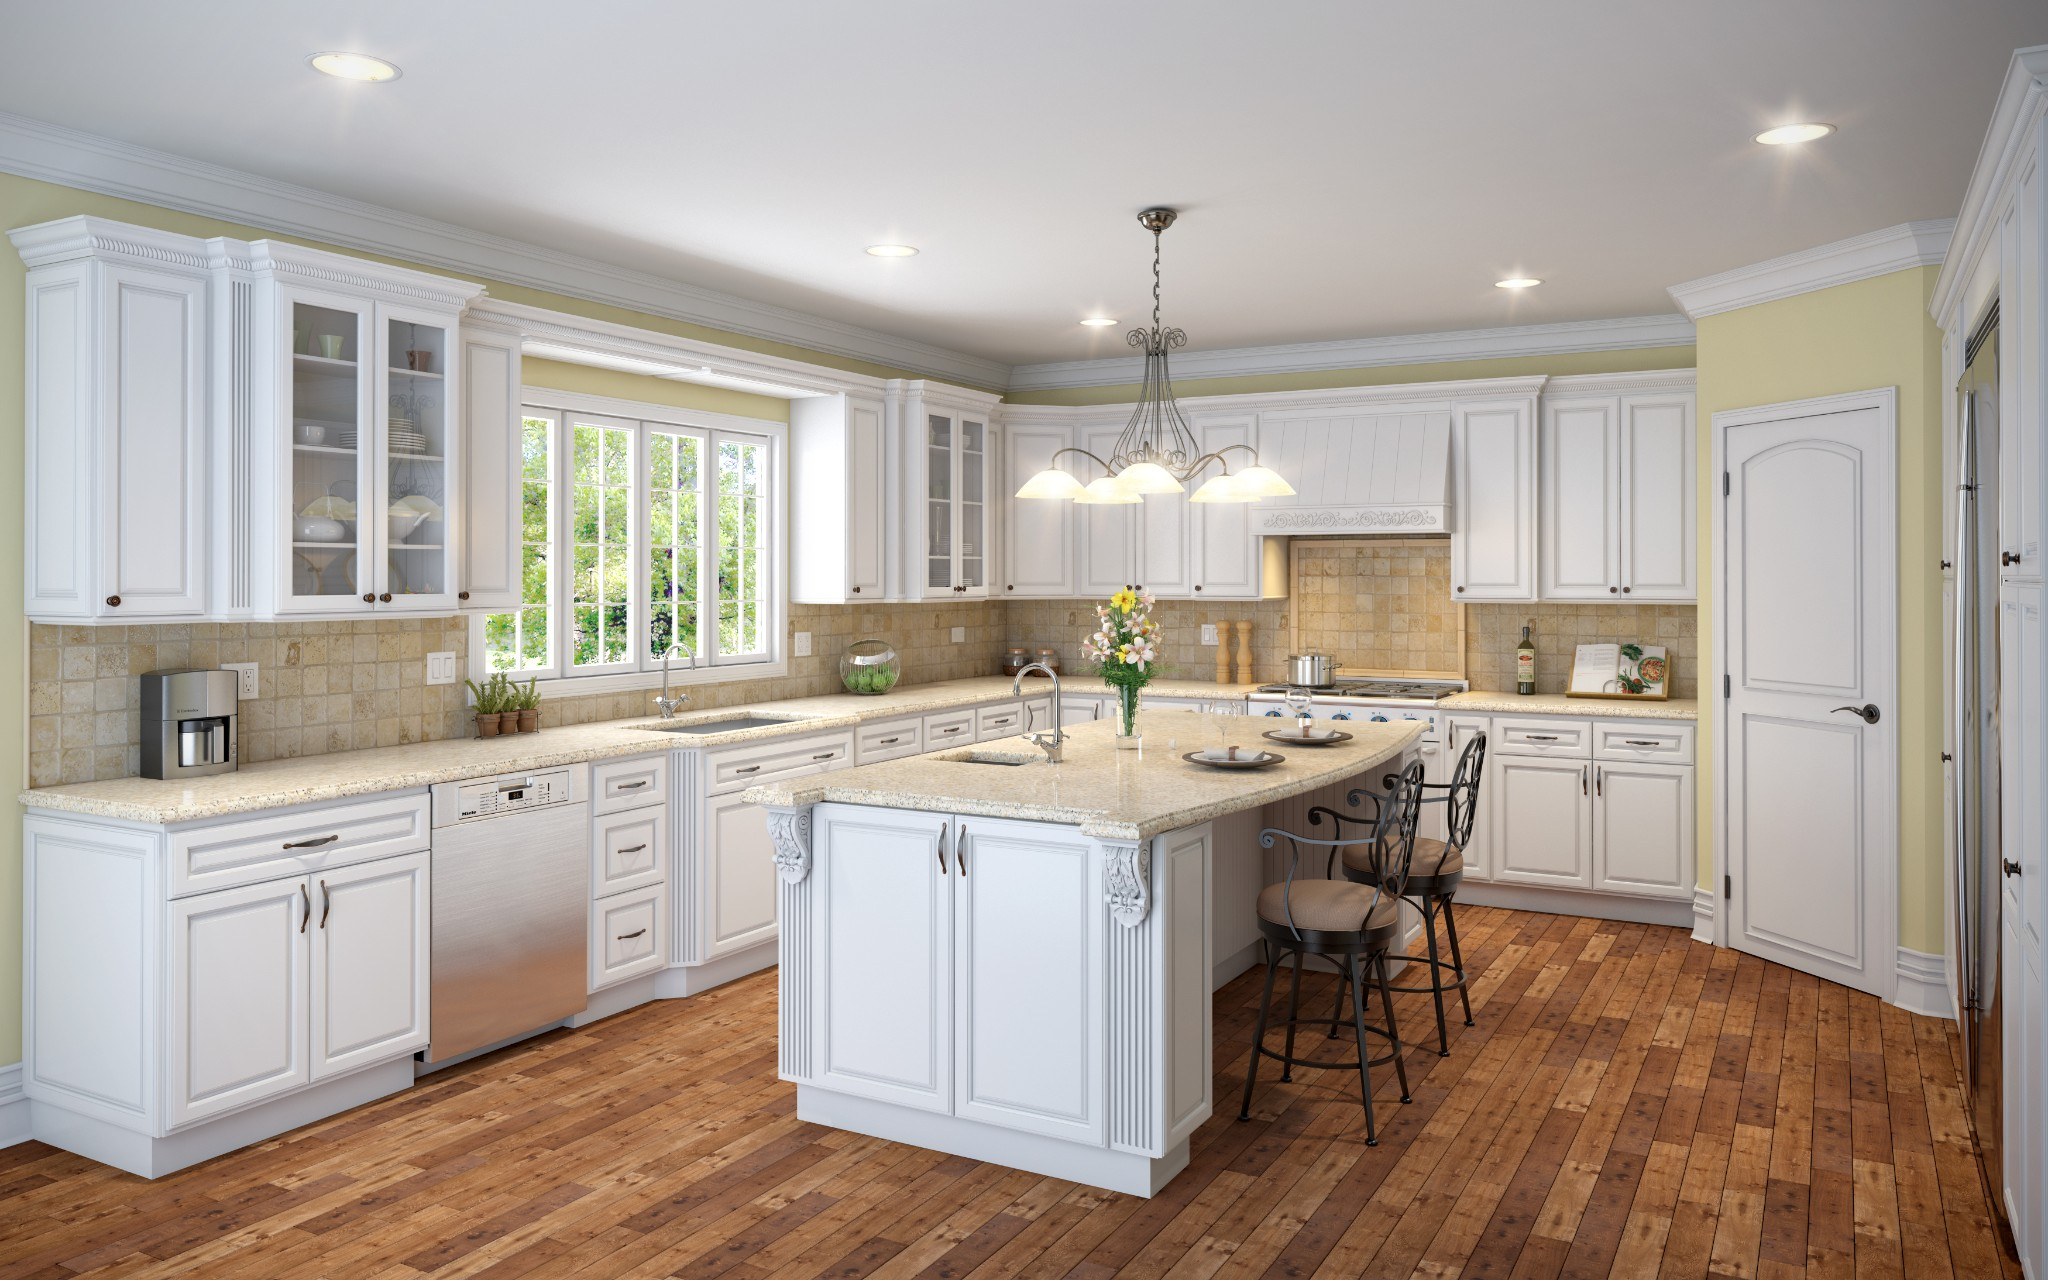 Wonderful image of Details about Solid Wood Kitchen Cabinets Sample Door in Raisd White  with #71482E color and 2048x1280 pixels